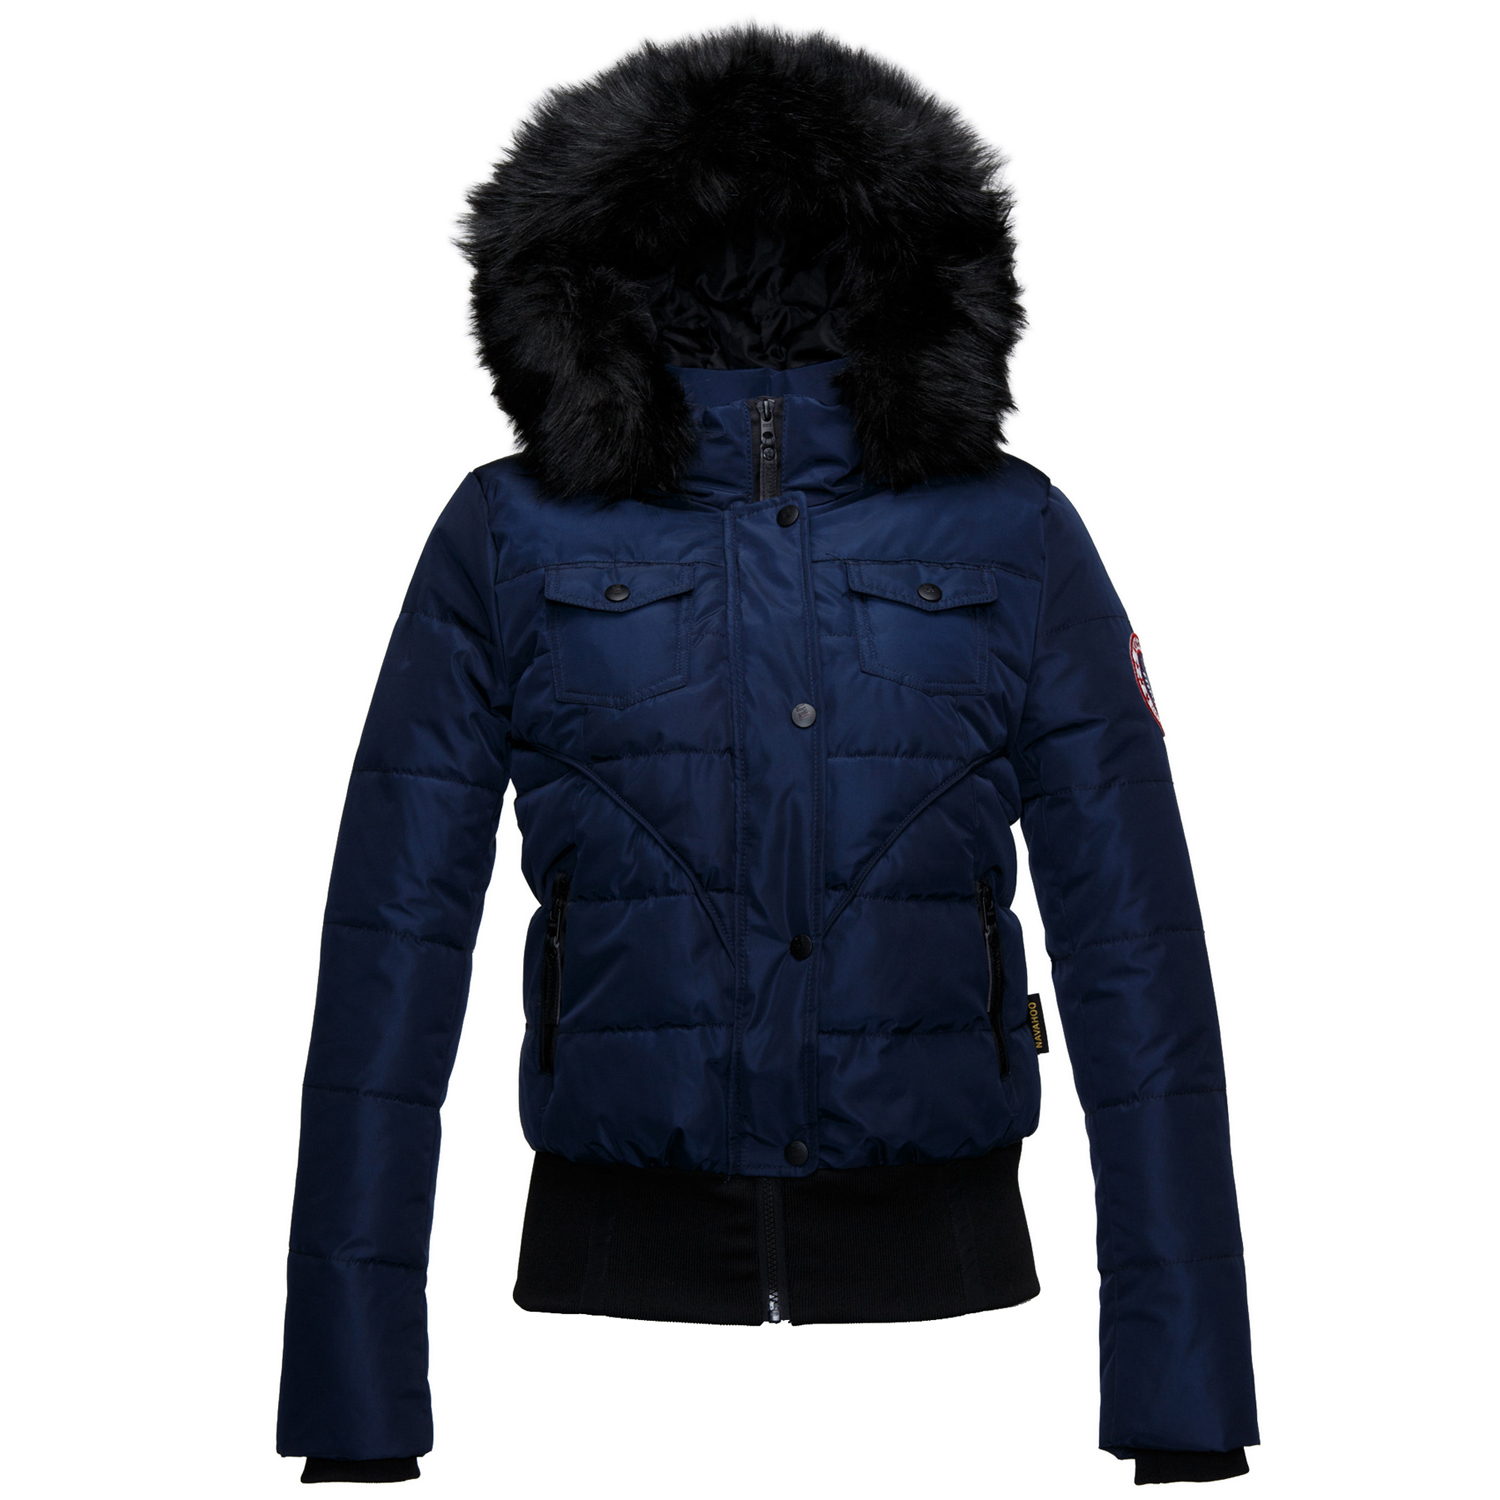 navahoo damen steppjacke 87013 herbst winter mantel parka. Black Bedroom Furniture Sets. Home Design Ideas